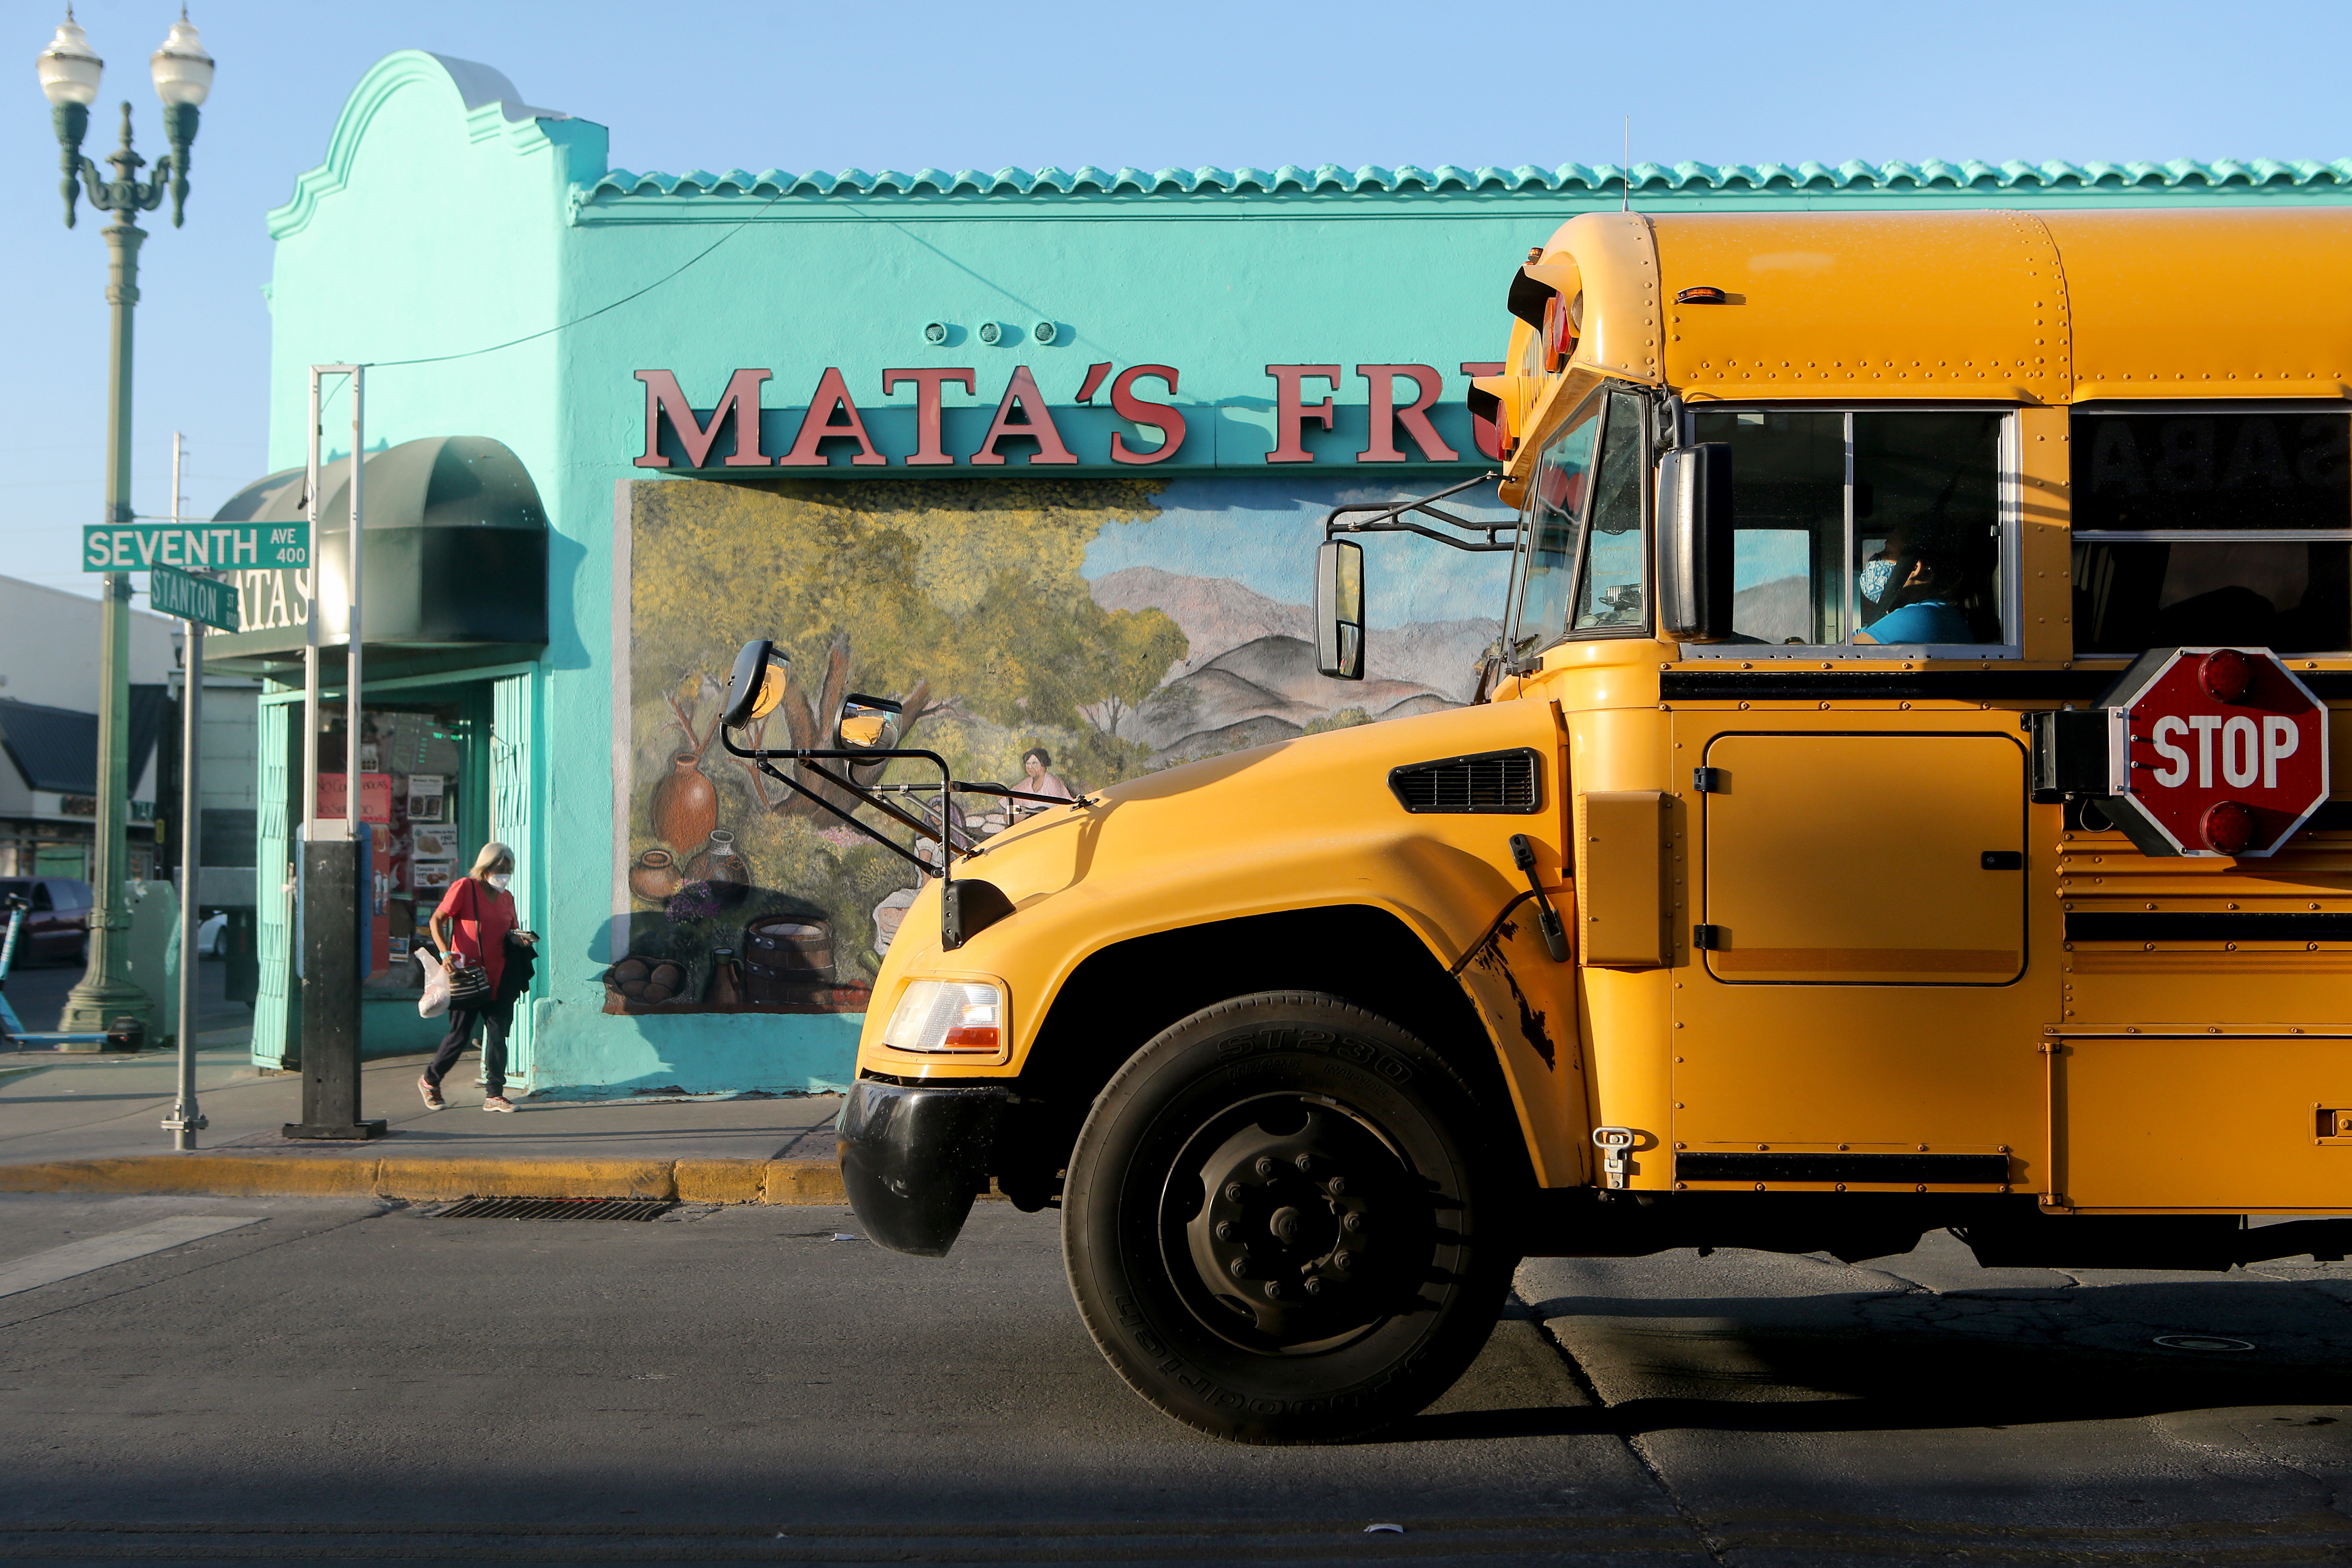 A yellow school bus with a masked driver drives up to an intersection in El Paso, Tex. There is a vibrant teal-colored storefront with a blonde woman wearing a pink shirt walking by on the corner of the street.